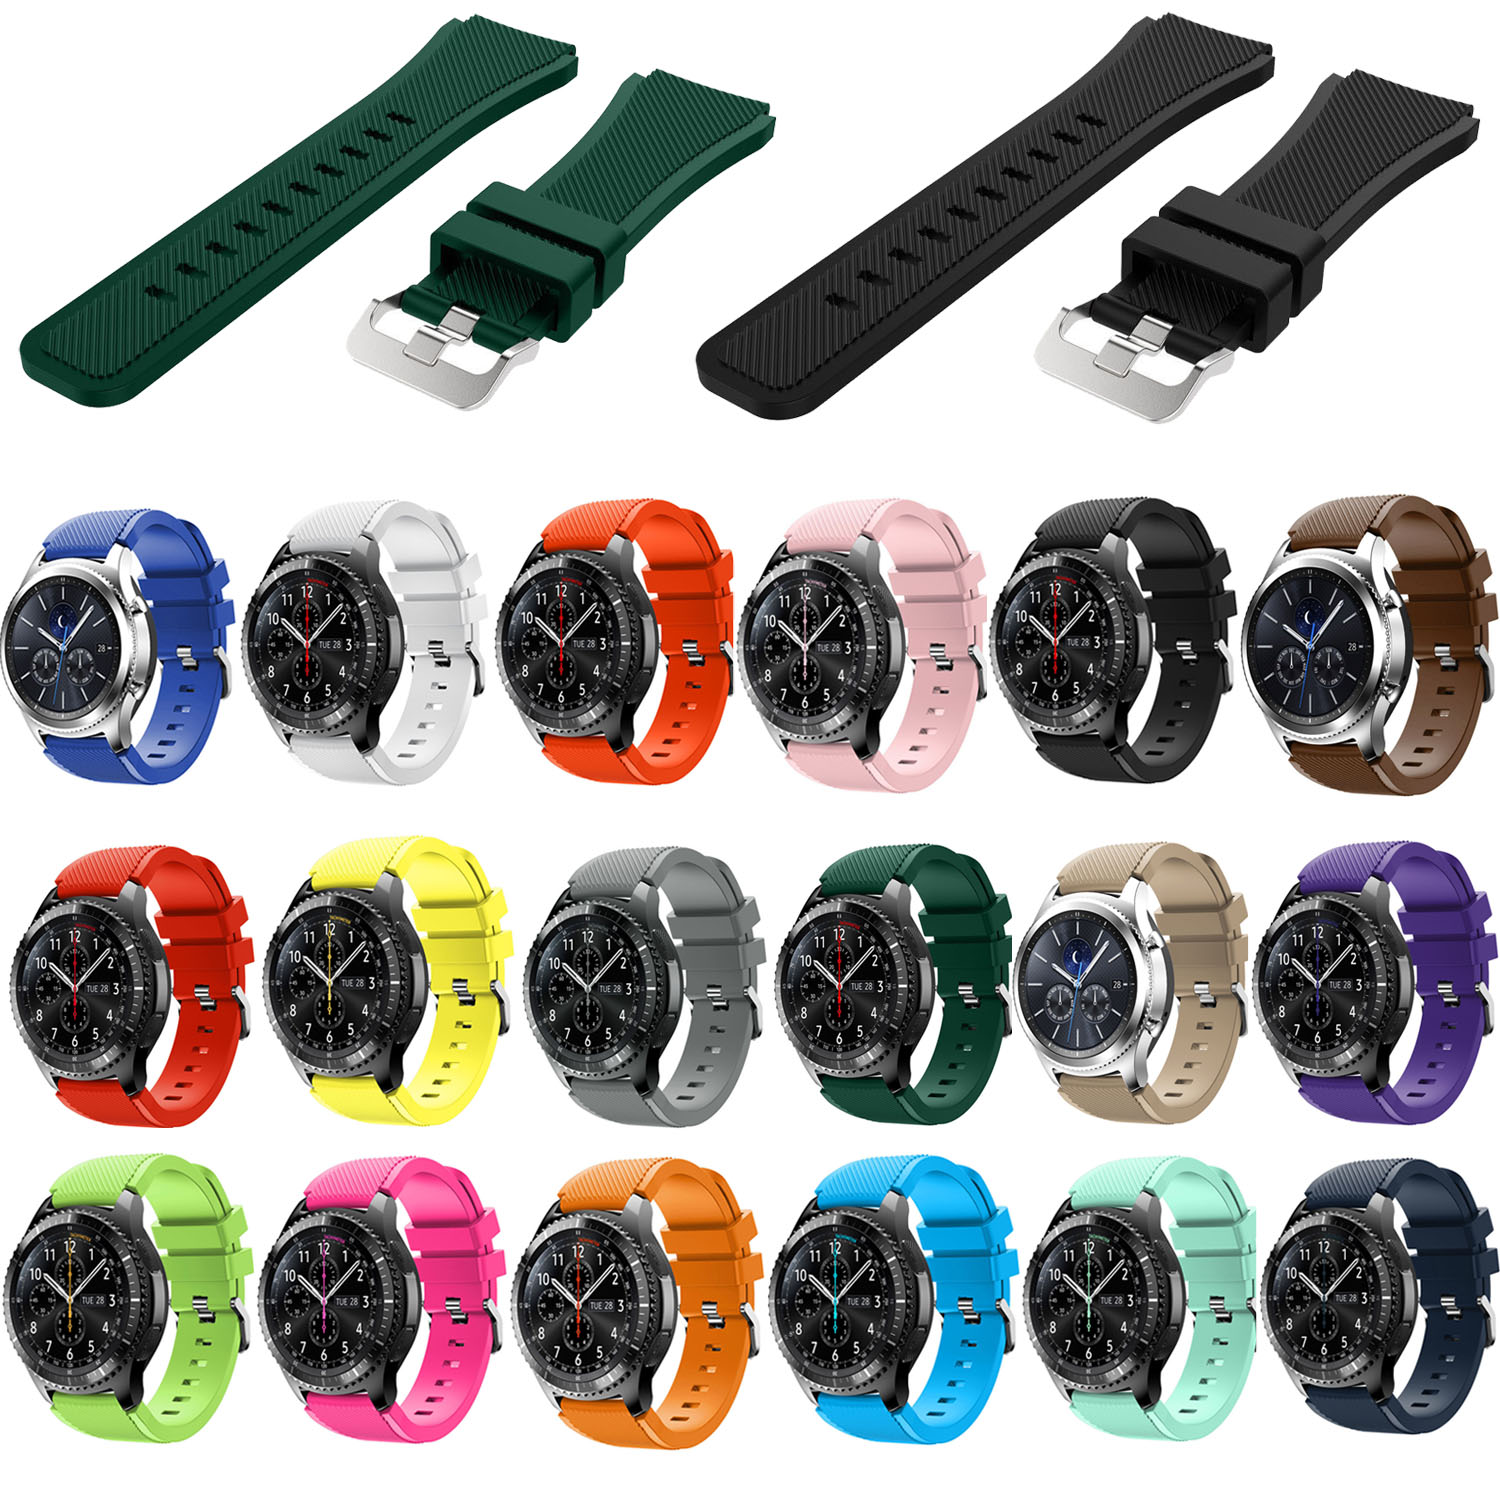 18 Colors Rubber Wrist Strap for Samsung Gear S3 Frontier Silicone Watch Bands 22 mm Gear S3 Classic Replacement Bracelet Band silicone sport watchband for gear s3 classic frontier 22mm strap for samsung galaxy watch 46mm band replacement strap bracelet